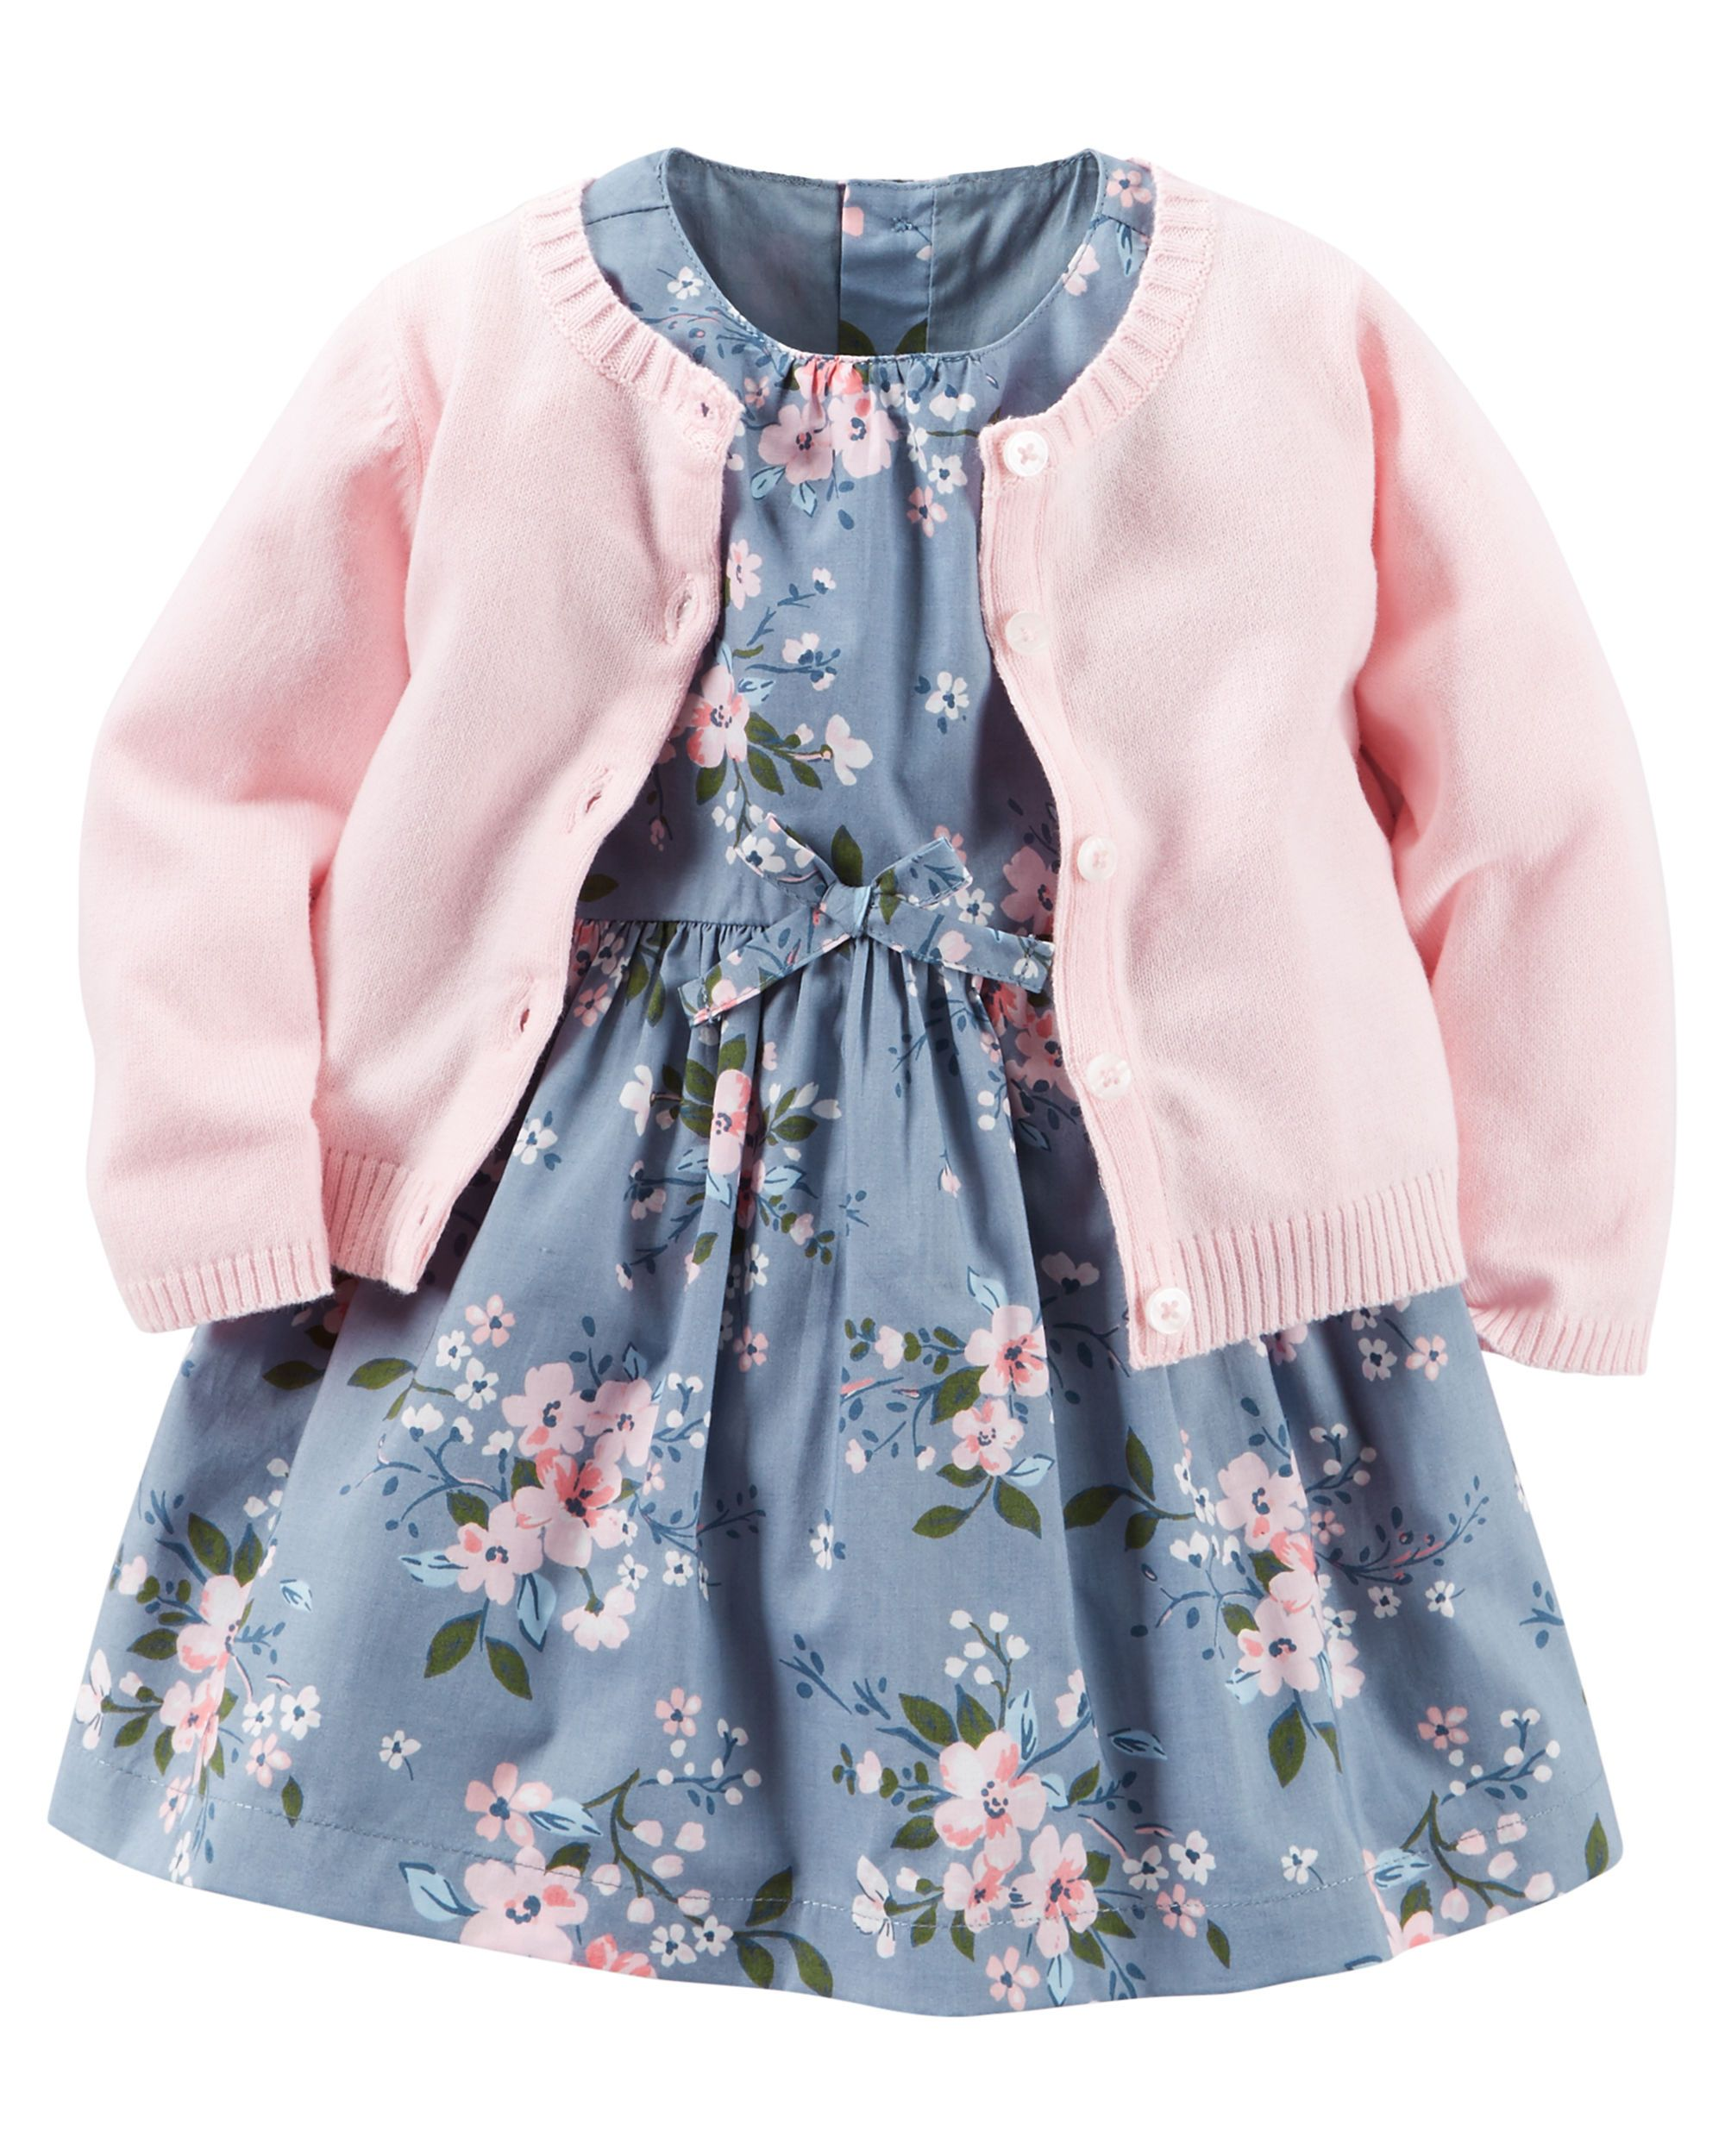 2 Piece Dress Cardigan Set Carters Com Babies Carters Baby